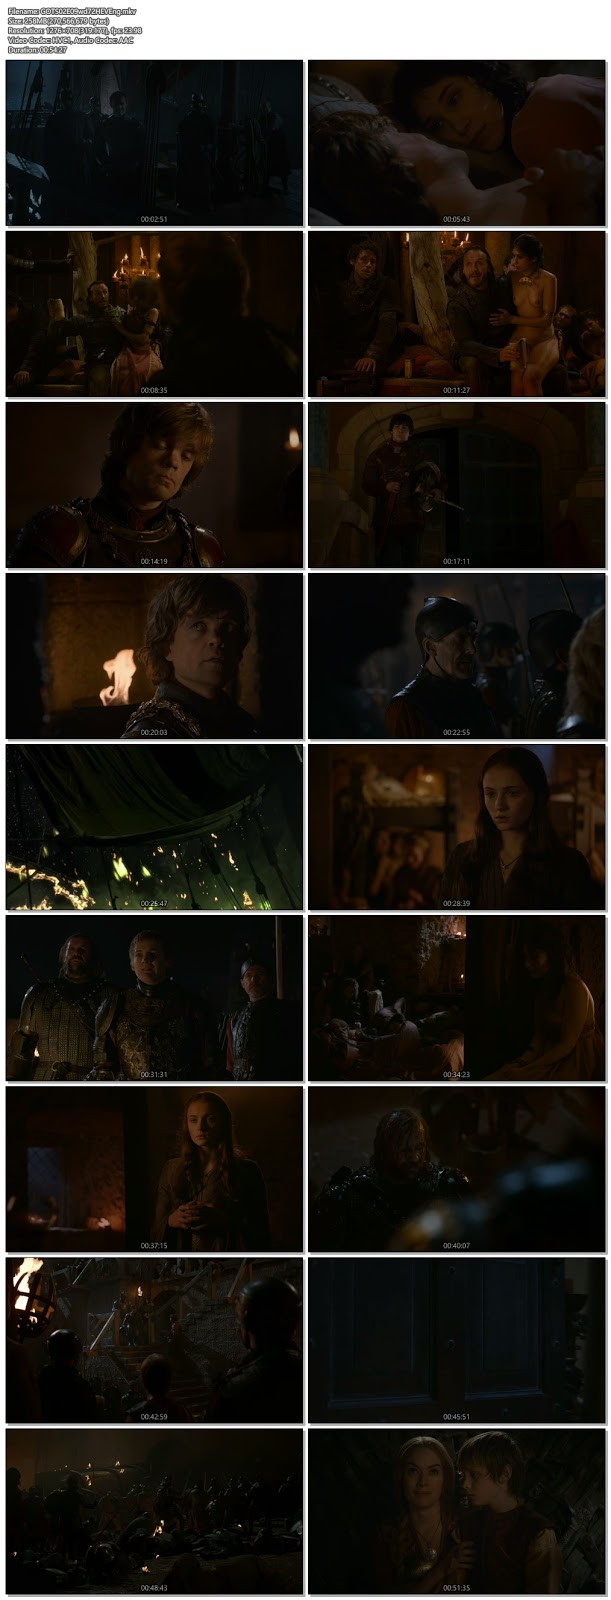 Game Of Thrones S02E09 Eng 720p BRRip 250Mb ESub x265 HEVC download and watch only at world4ufree.fun